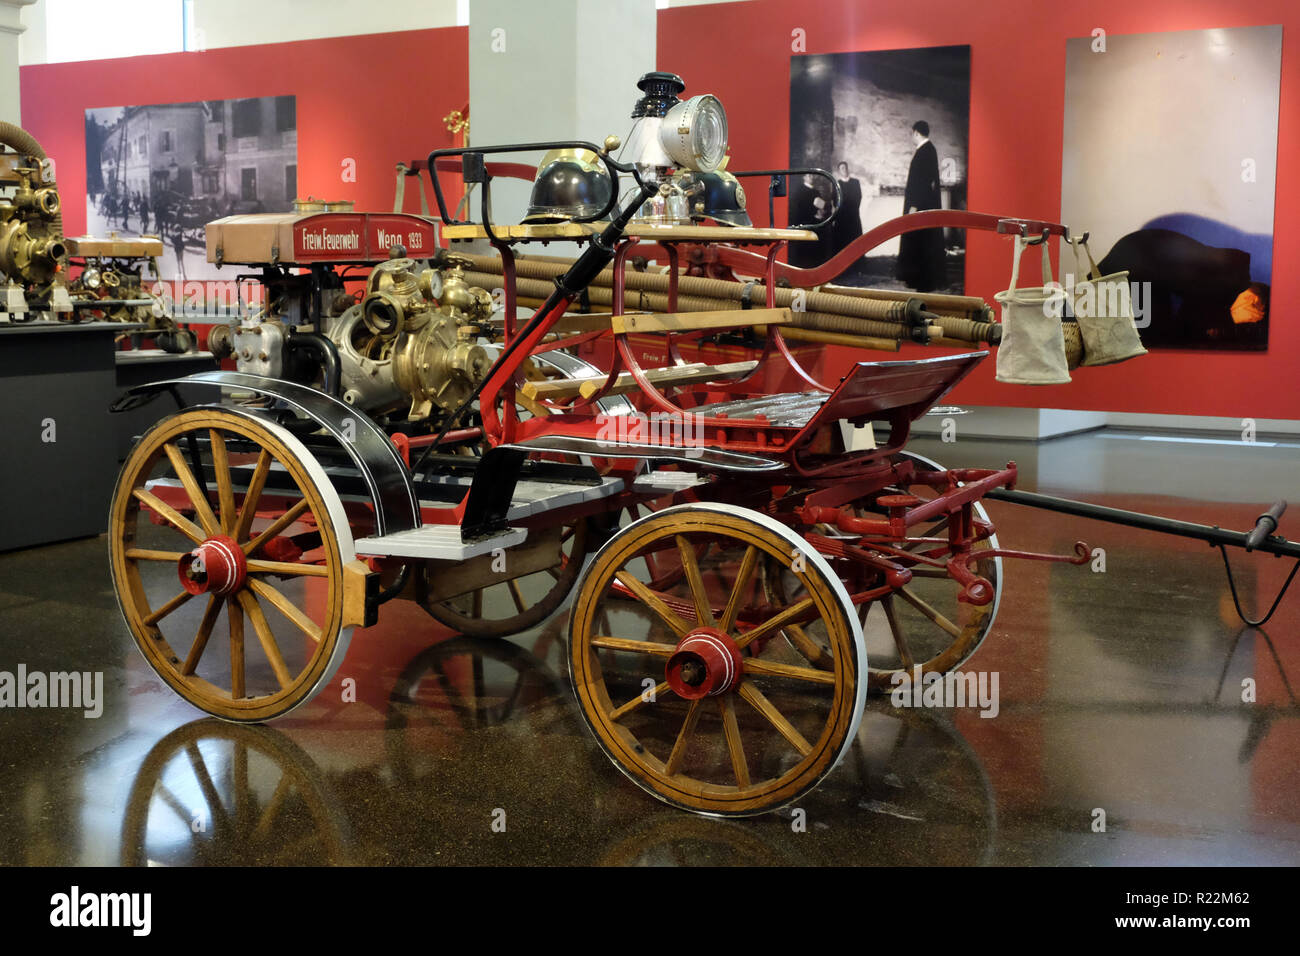 HISTORIC FIRE-FIGHTING VEHICLES - Stock Image